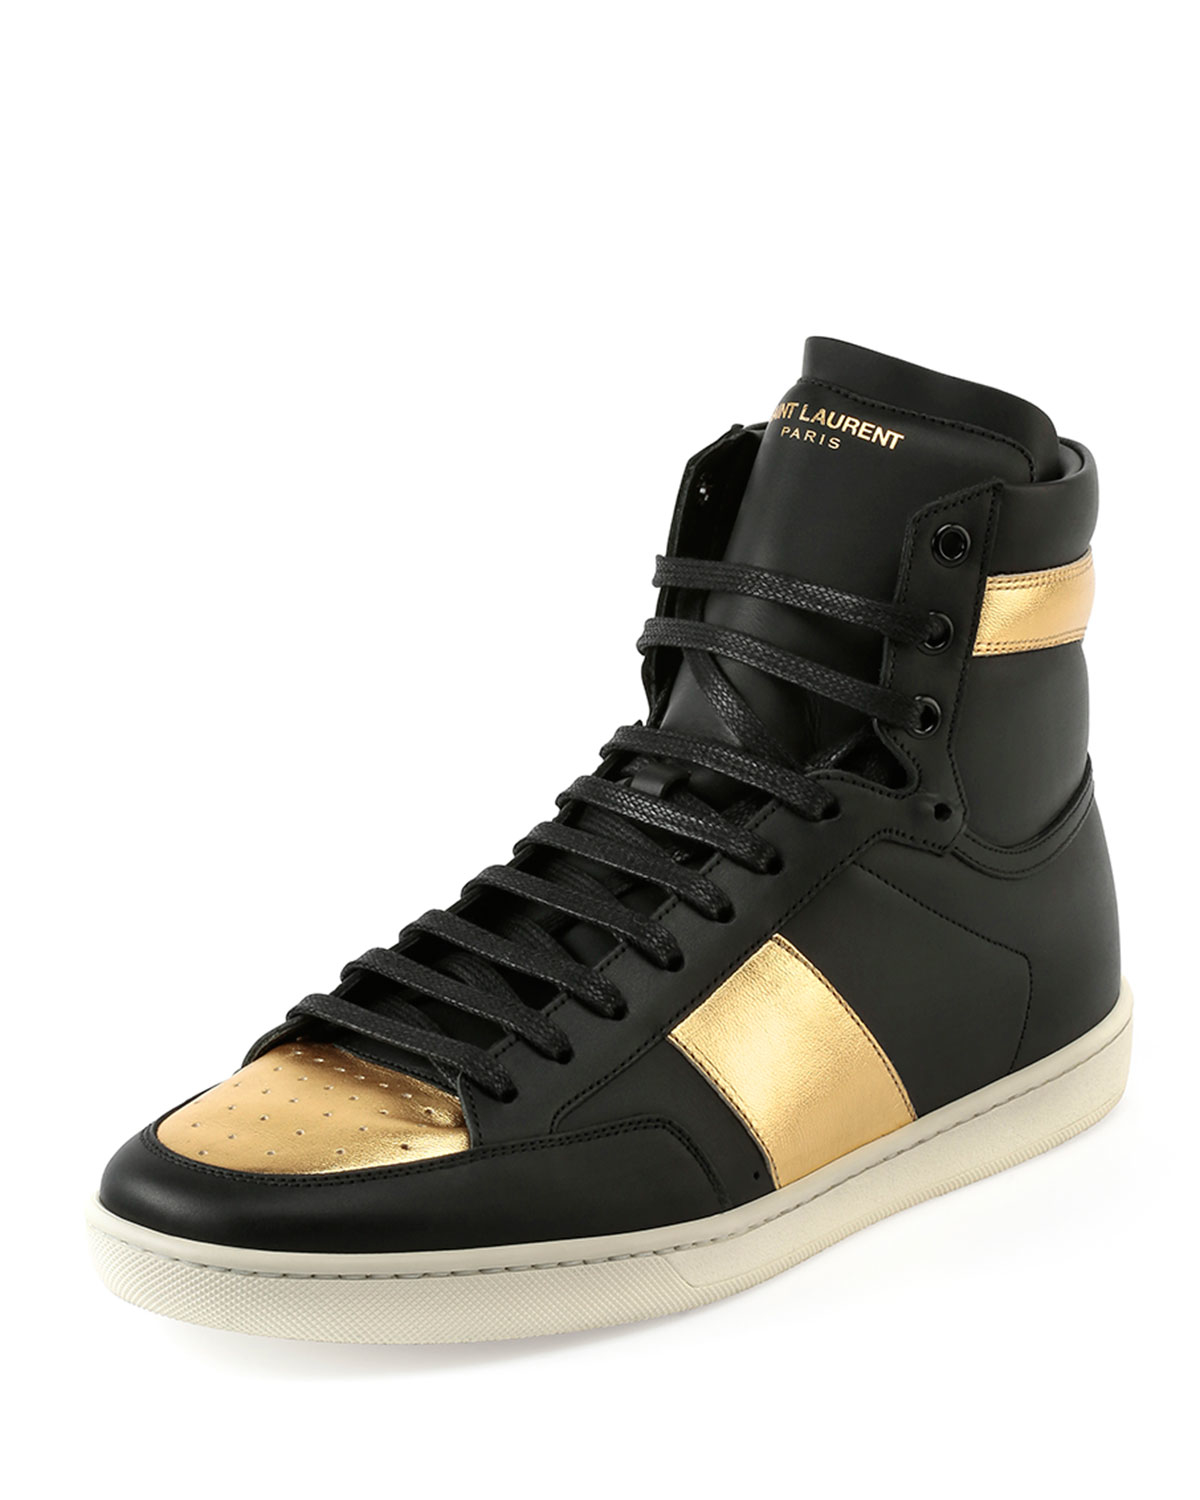 18H Leather High-Top Sneaker in Black